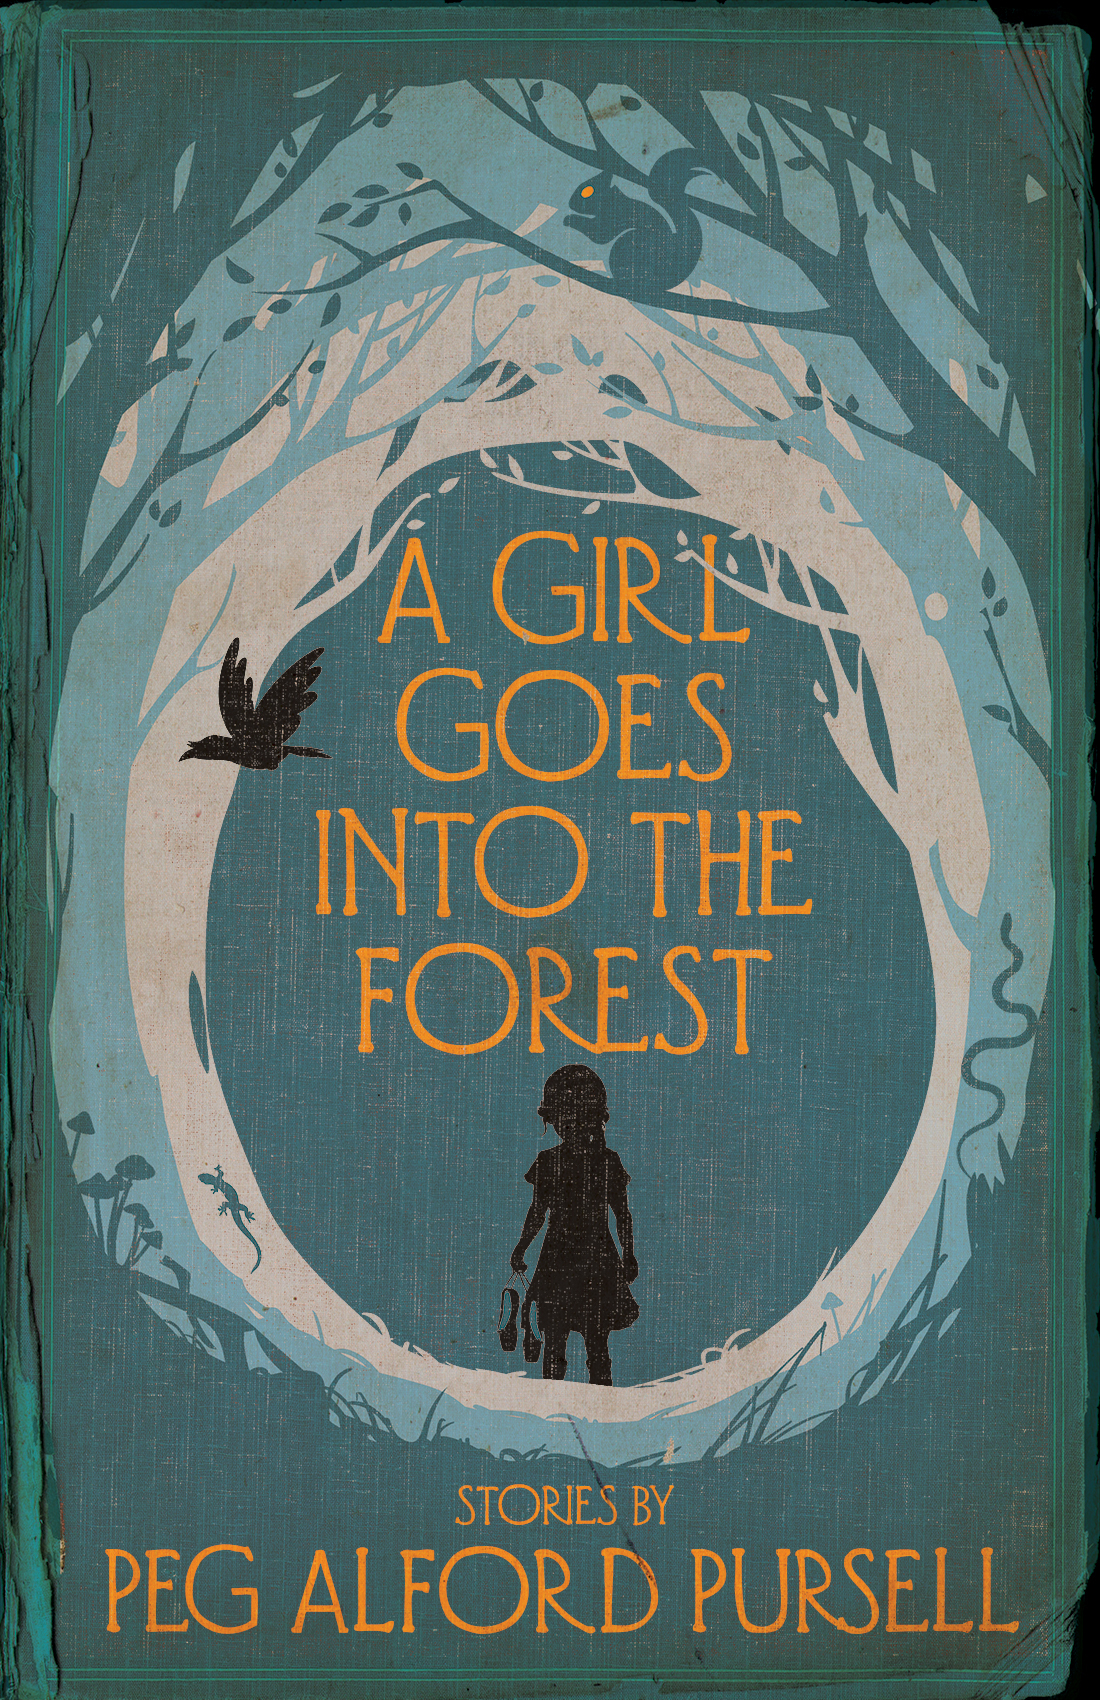 A girl goes into the forest 02.5